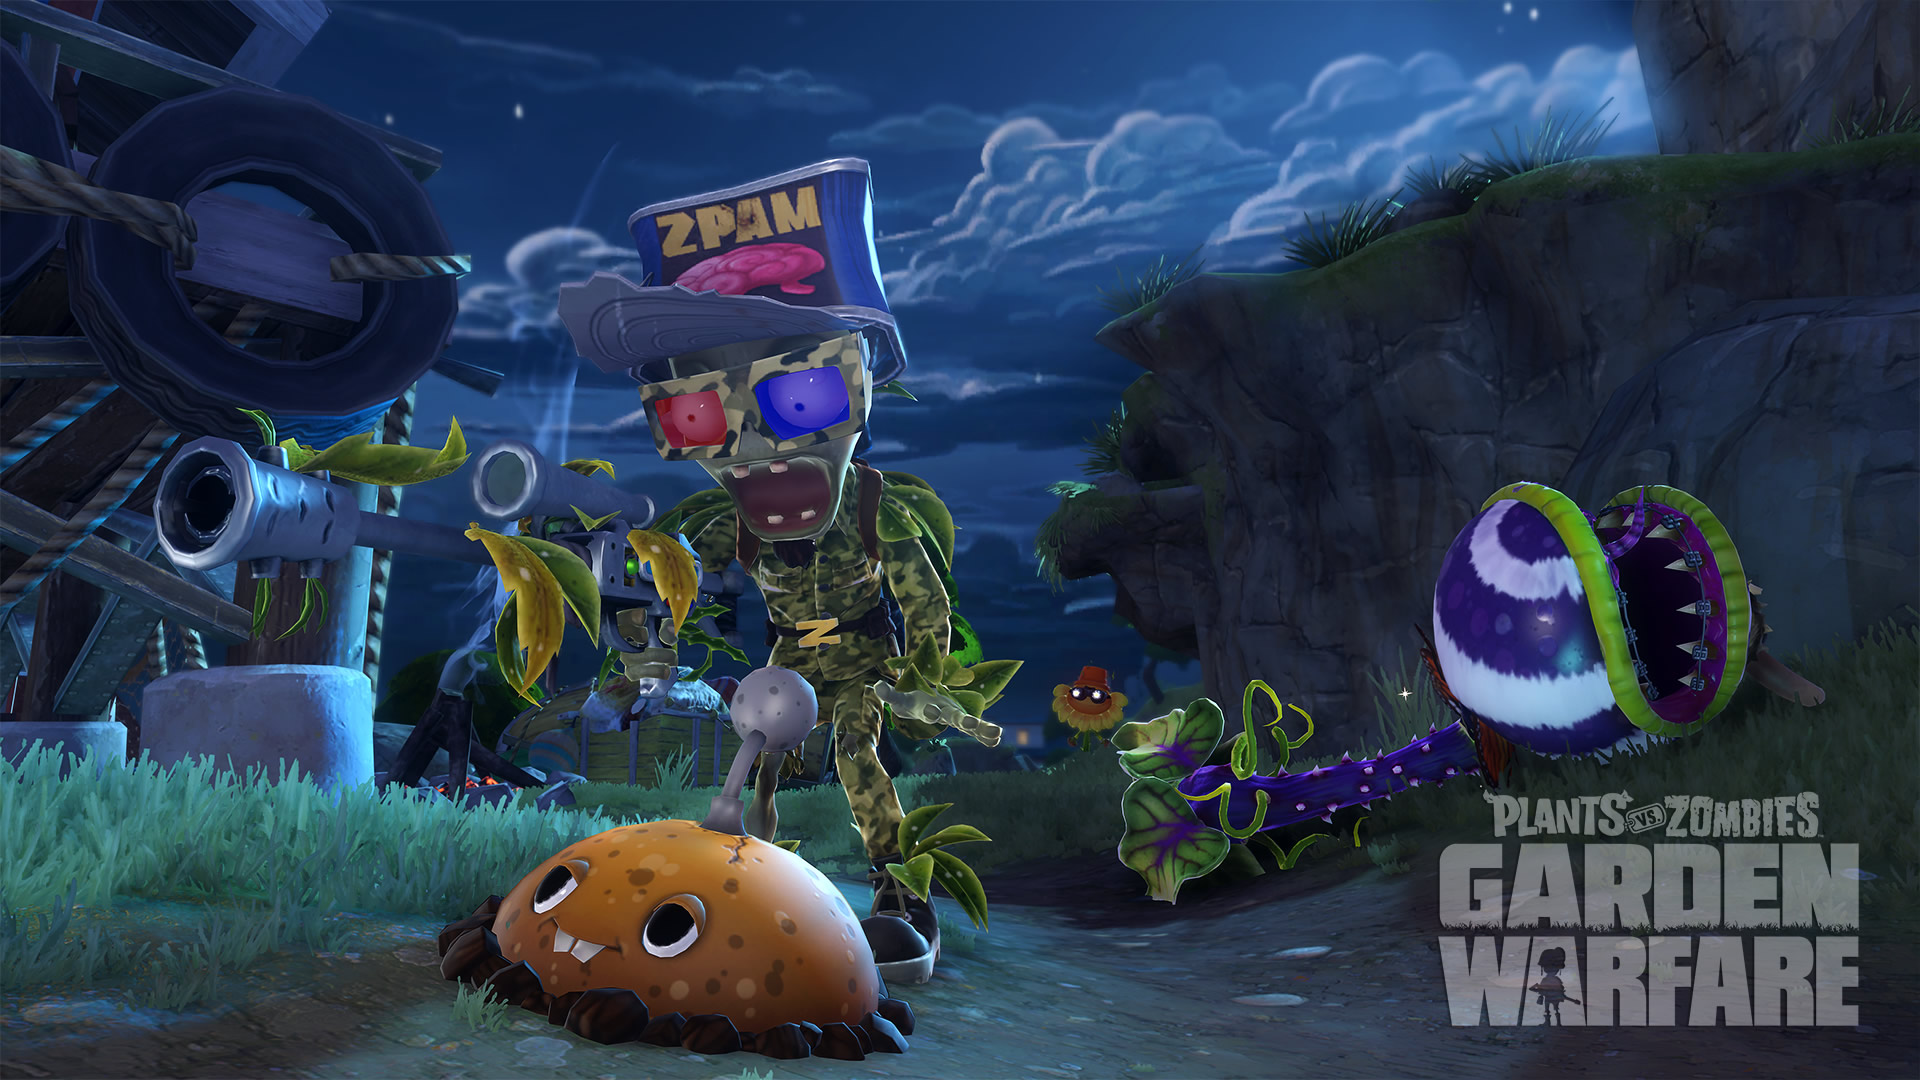 Pvz Garden Warfare Review Jatokun Reviews De Playstation 4 Y Pc